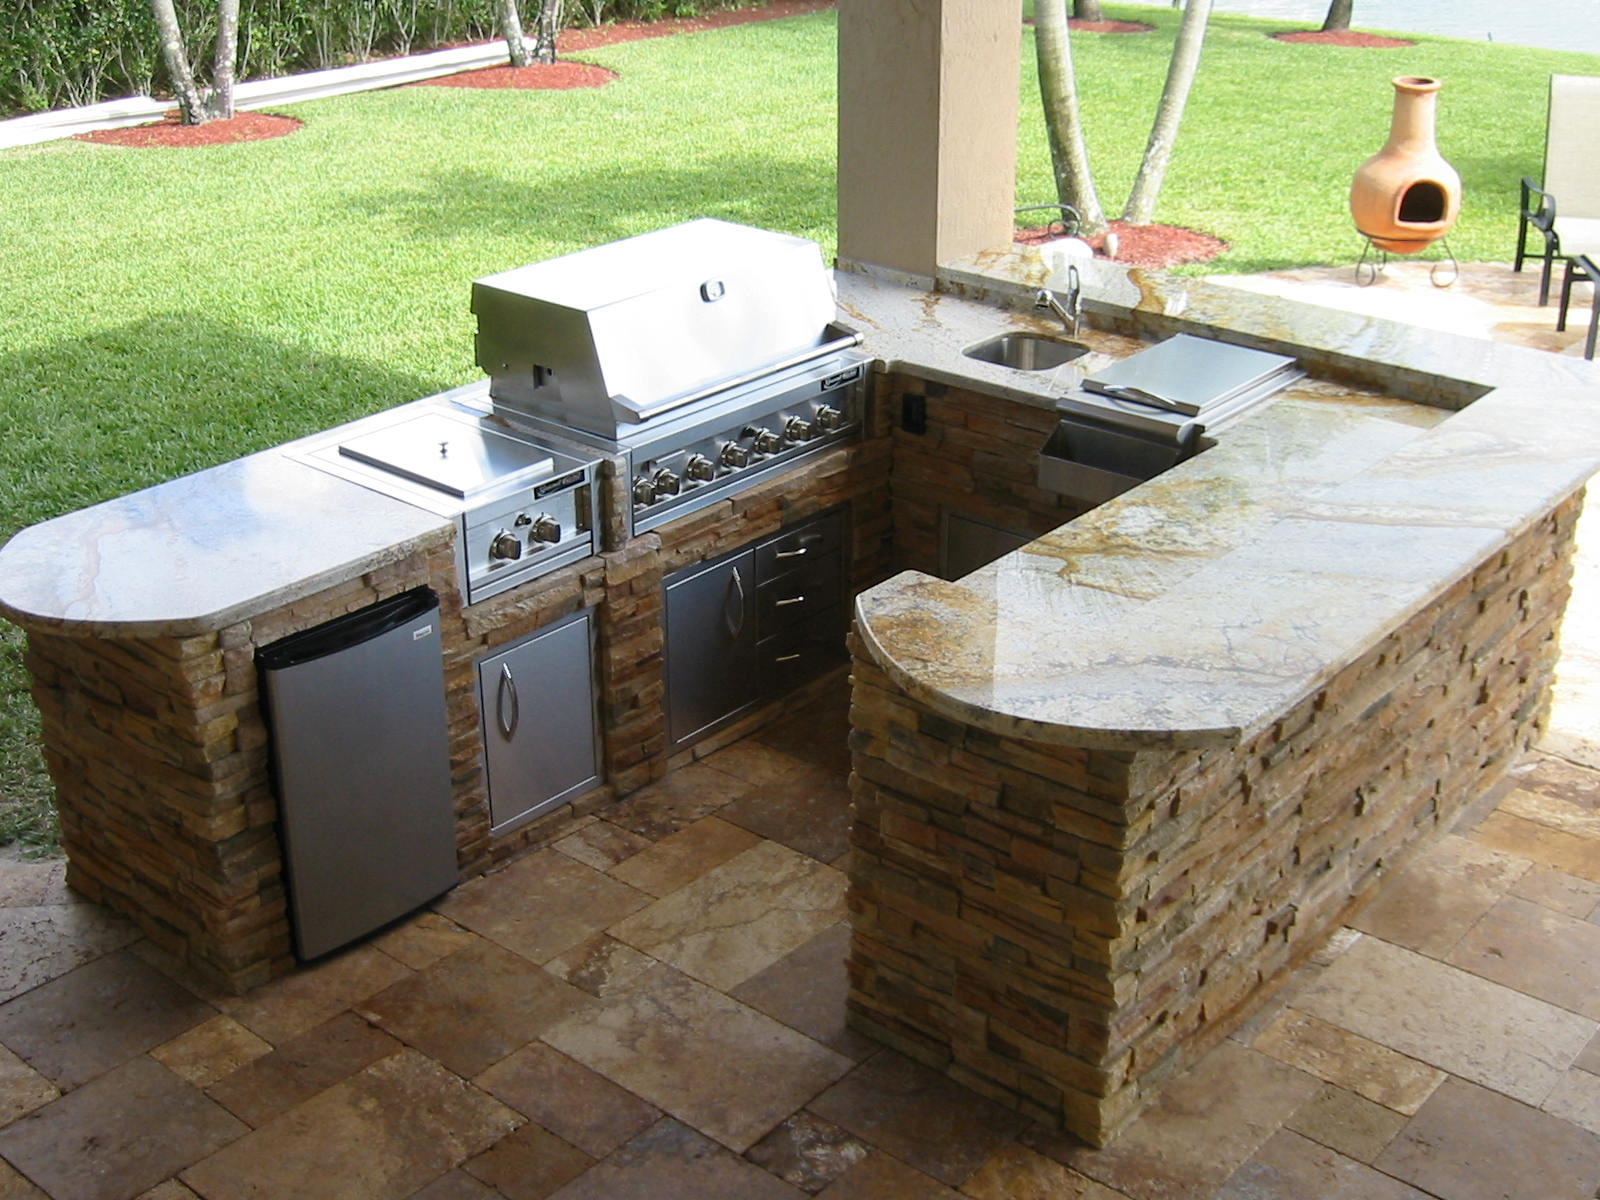 Outdoor kitchen depot outdoor kitchen building and design for Outdoor barbecue grill designs